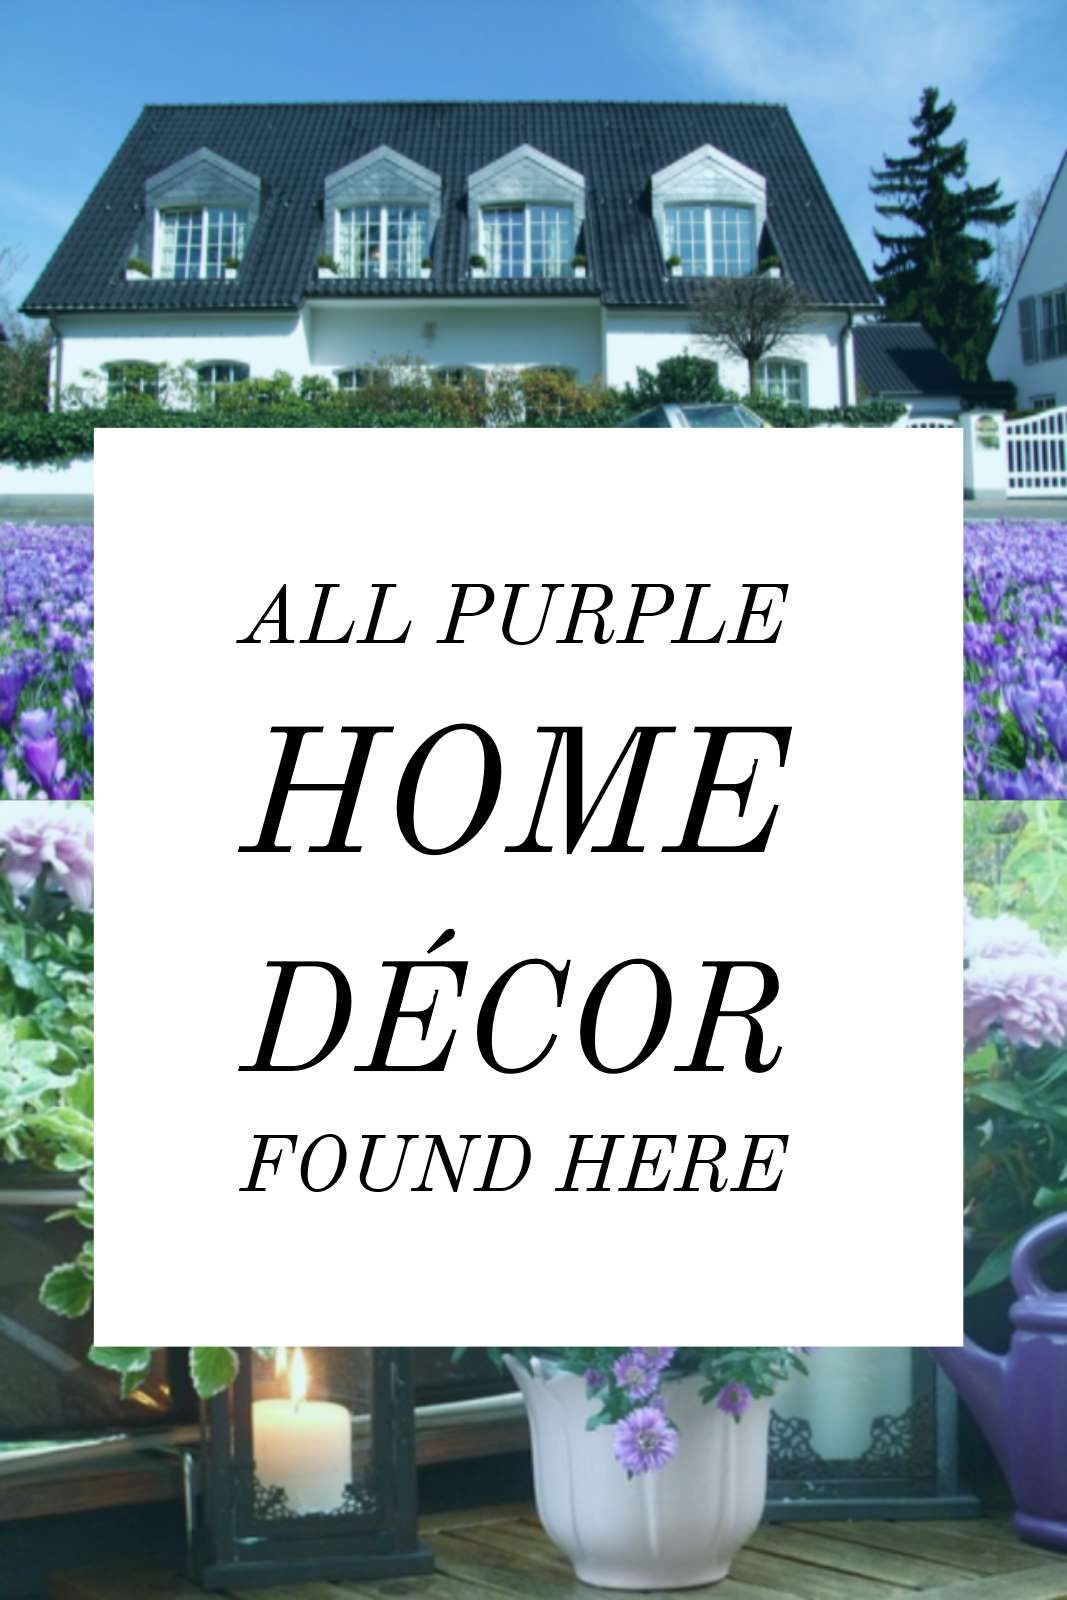 All Purple Home Decor Items Featured Here   Come Take A Look